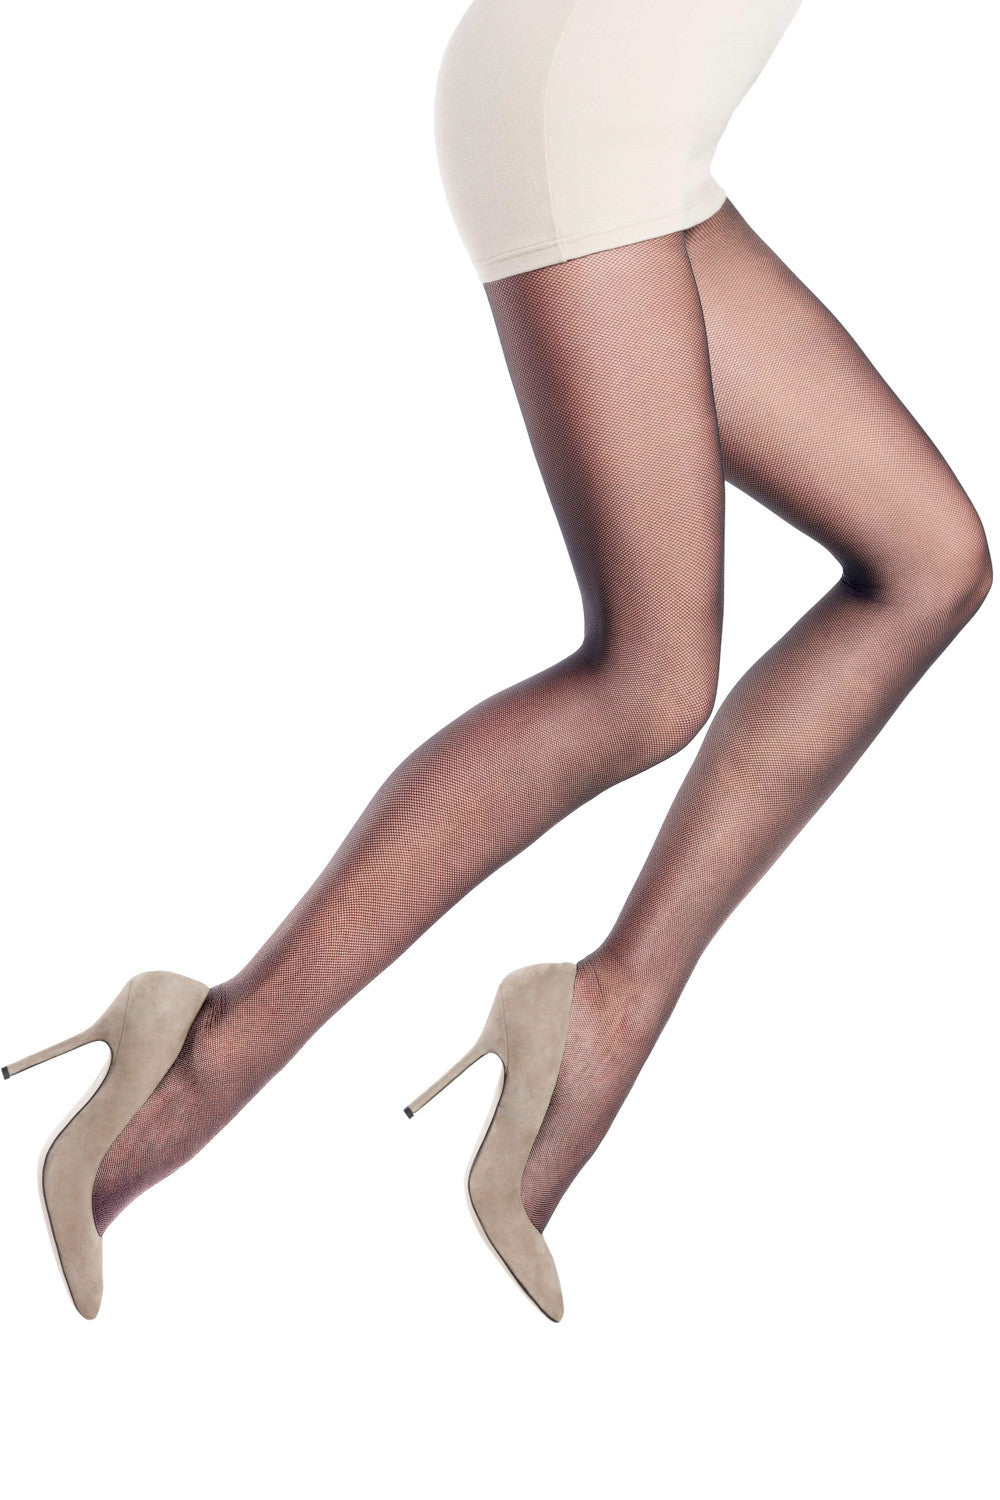 Oroblu Tulle 20 Tights - Mayfair Stockings - Oroblu - Tights - 1